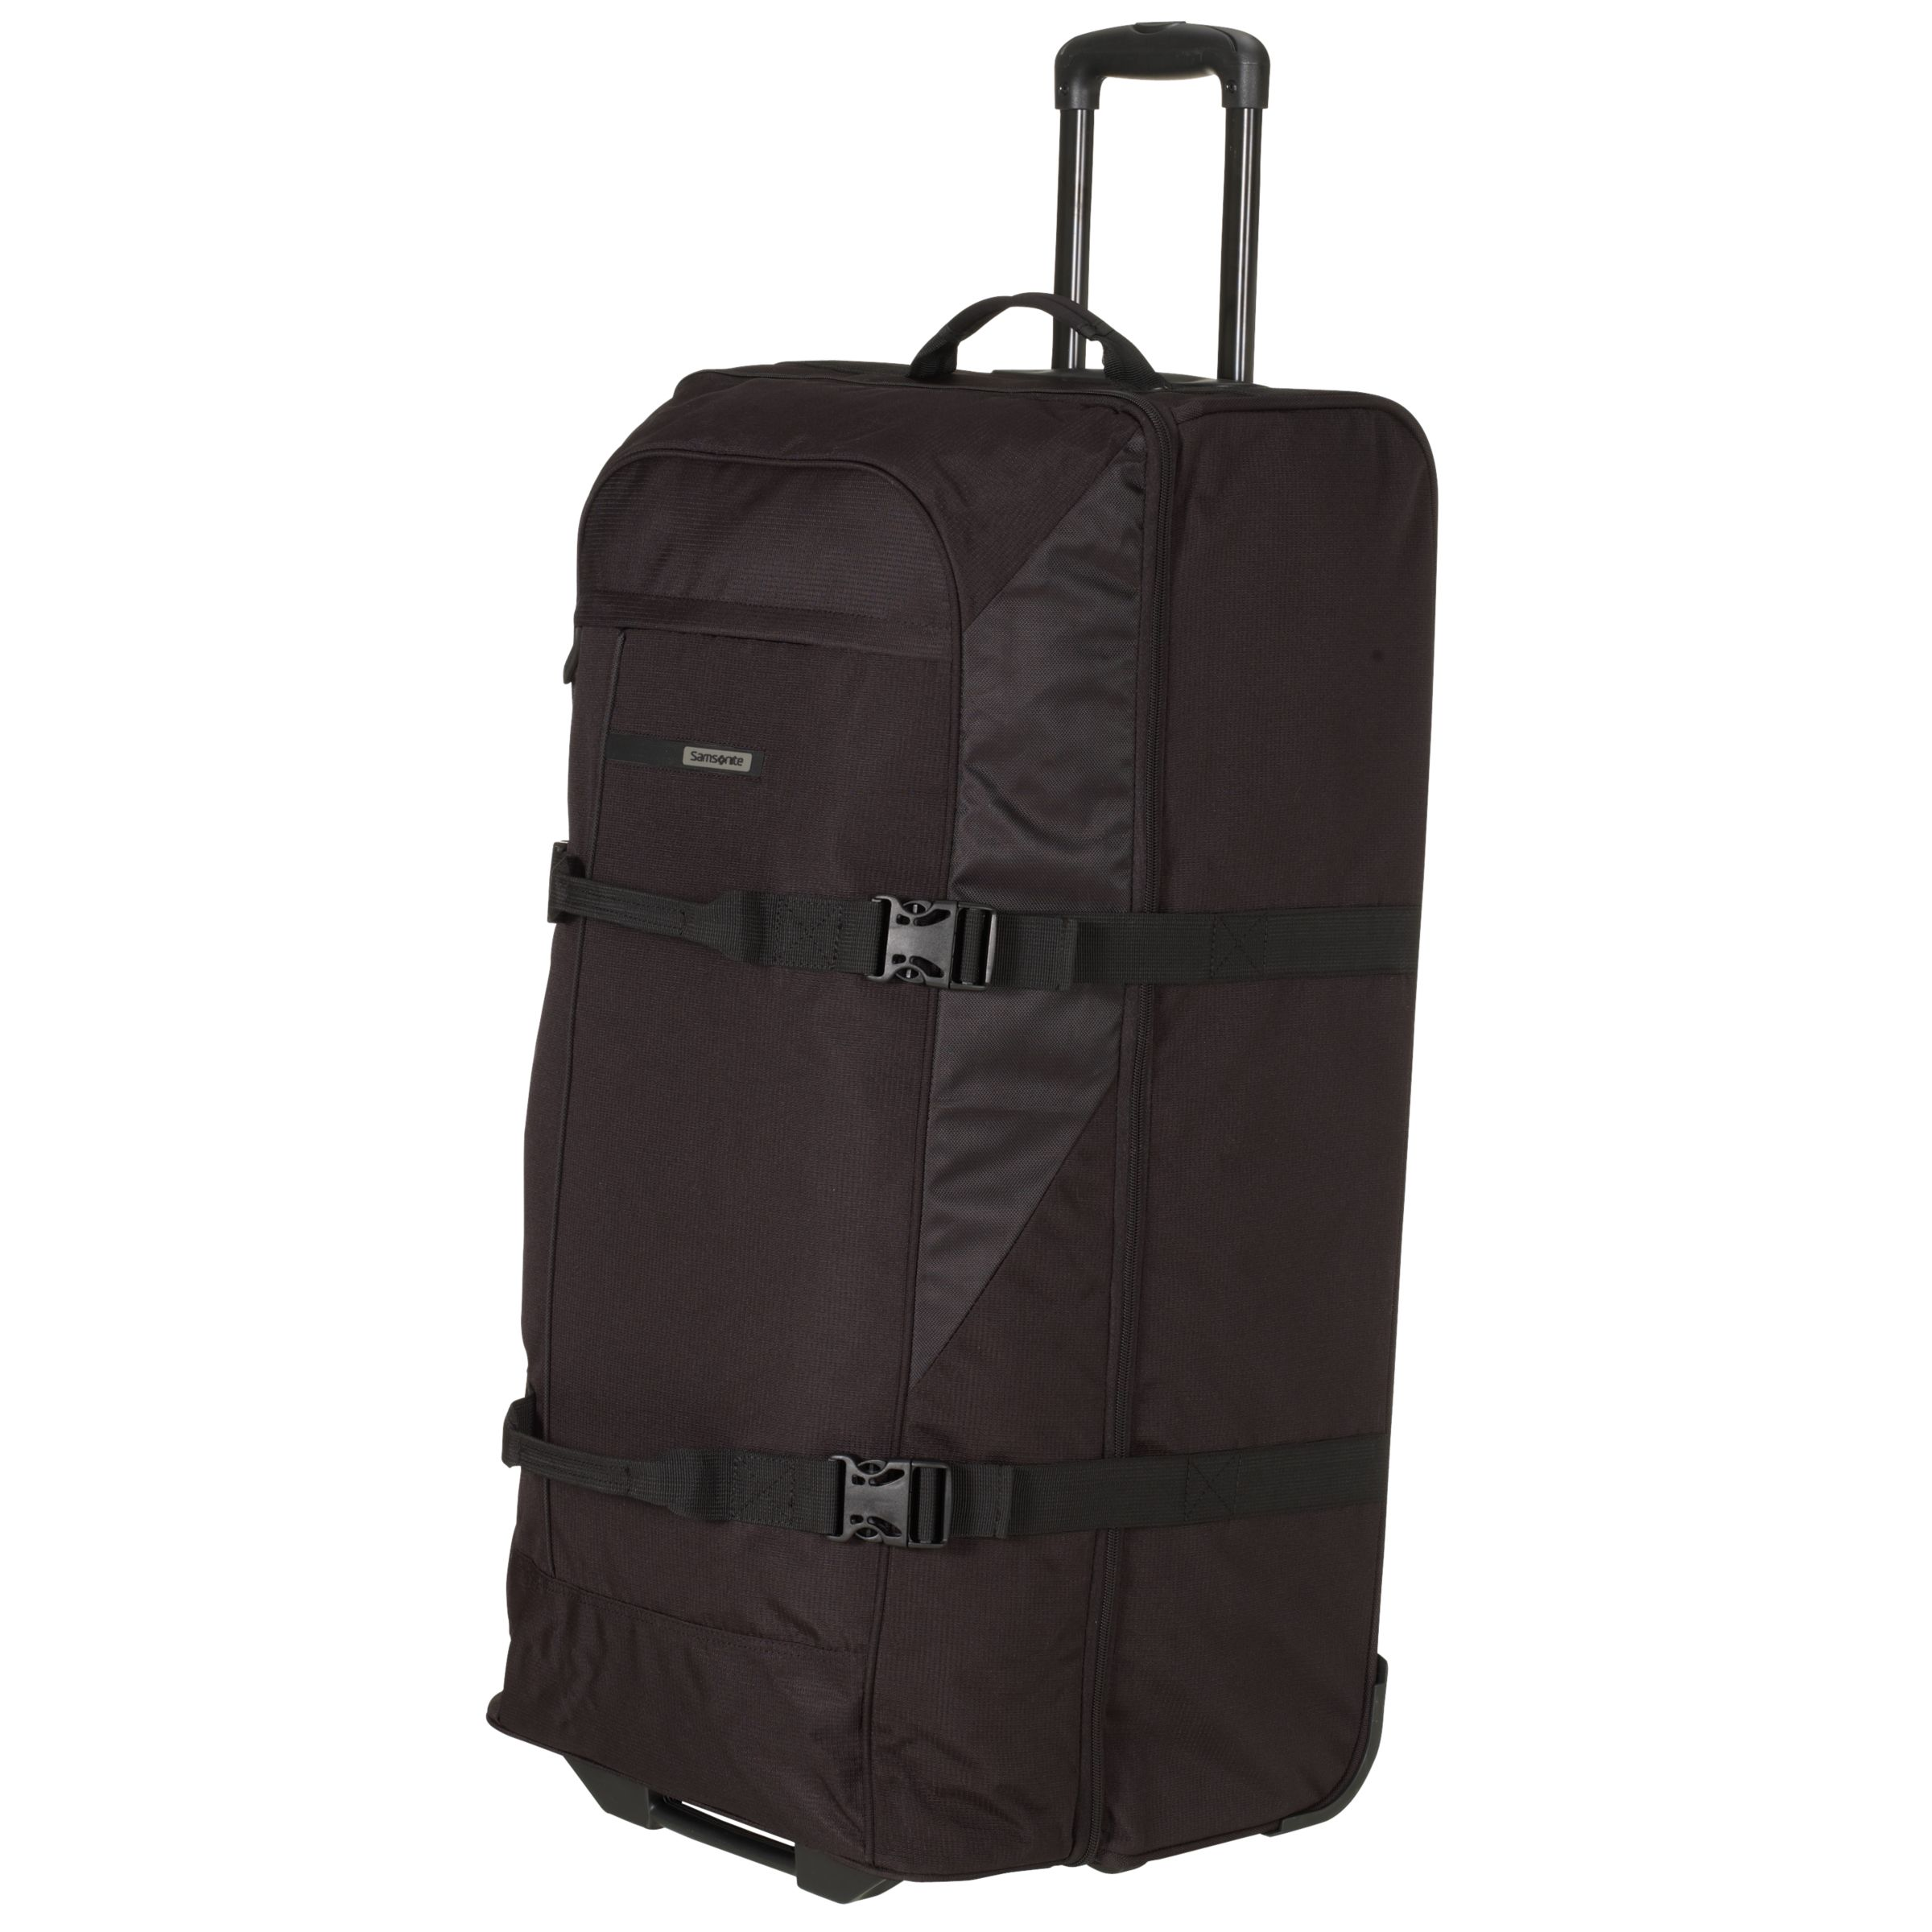 Samsonite Wander-FULL 2-Wheel Duffle Bag, Black